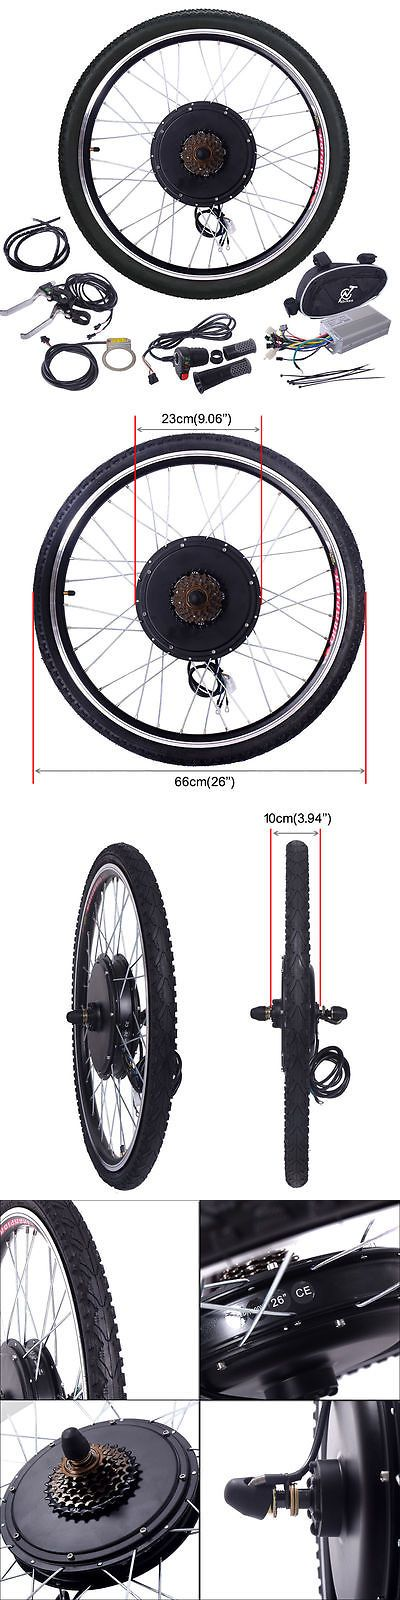 Electric Bicycles 74469: 48V 1000W Electric Bicycle Cycle E Bike 26 Conversion Kit Hub Motor Rear Wheel -> BUY IT NOW ONLY: $150.09 on eBay!